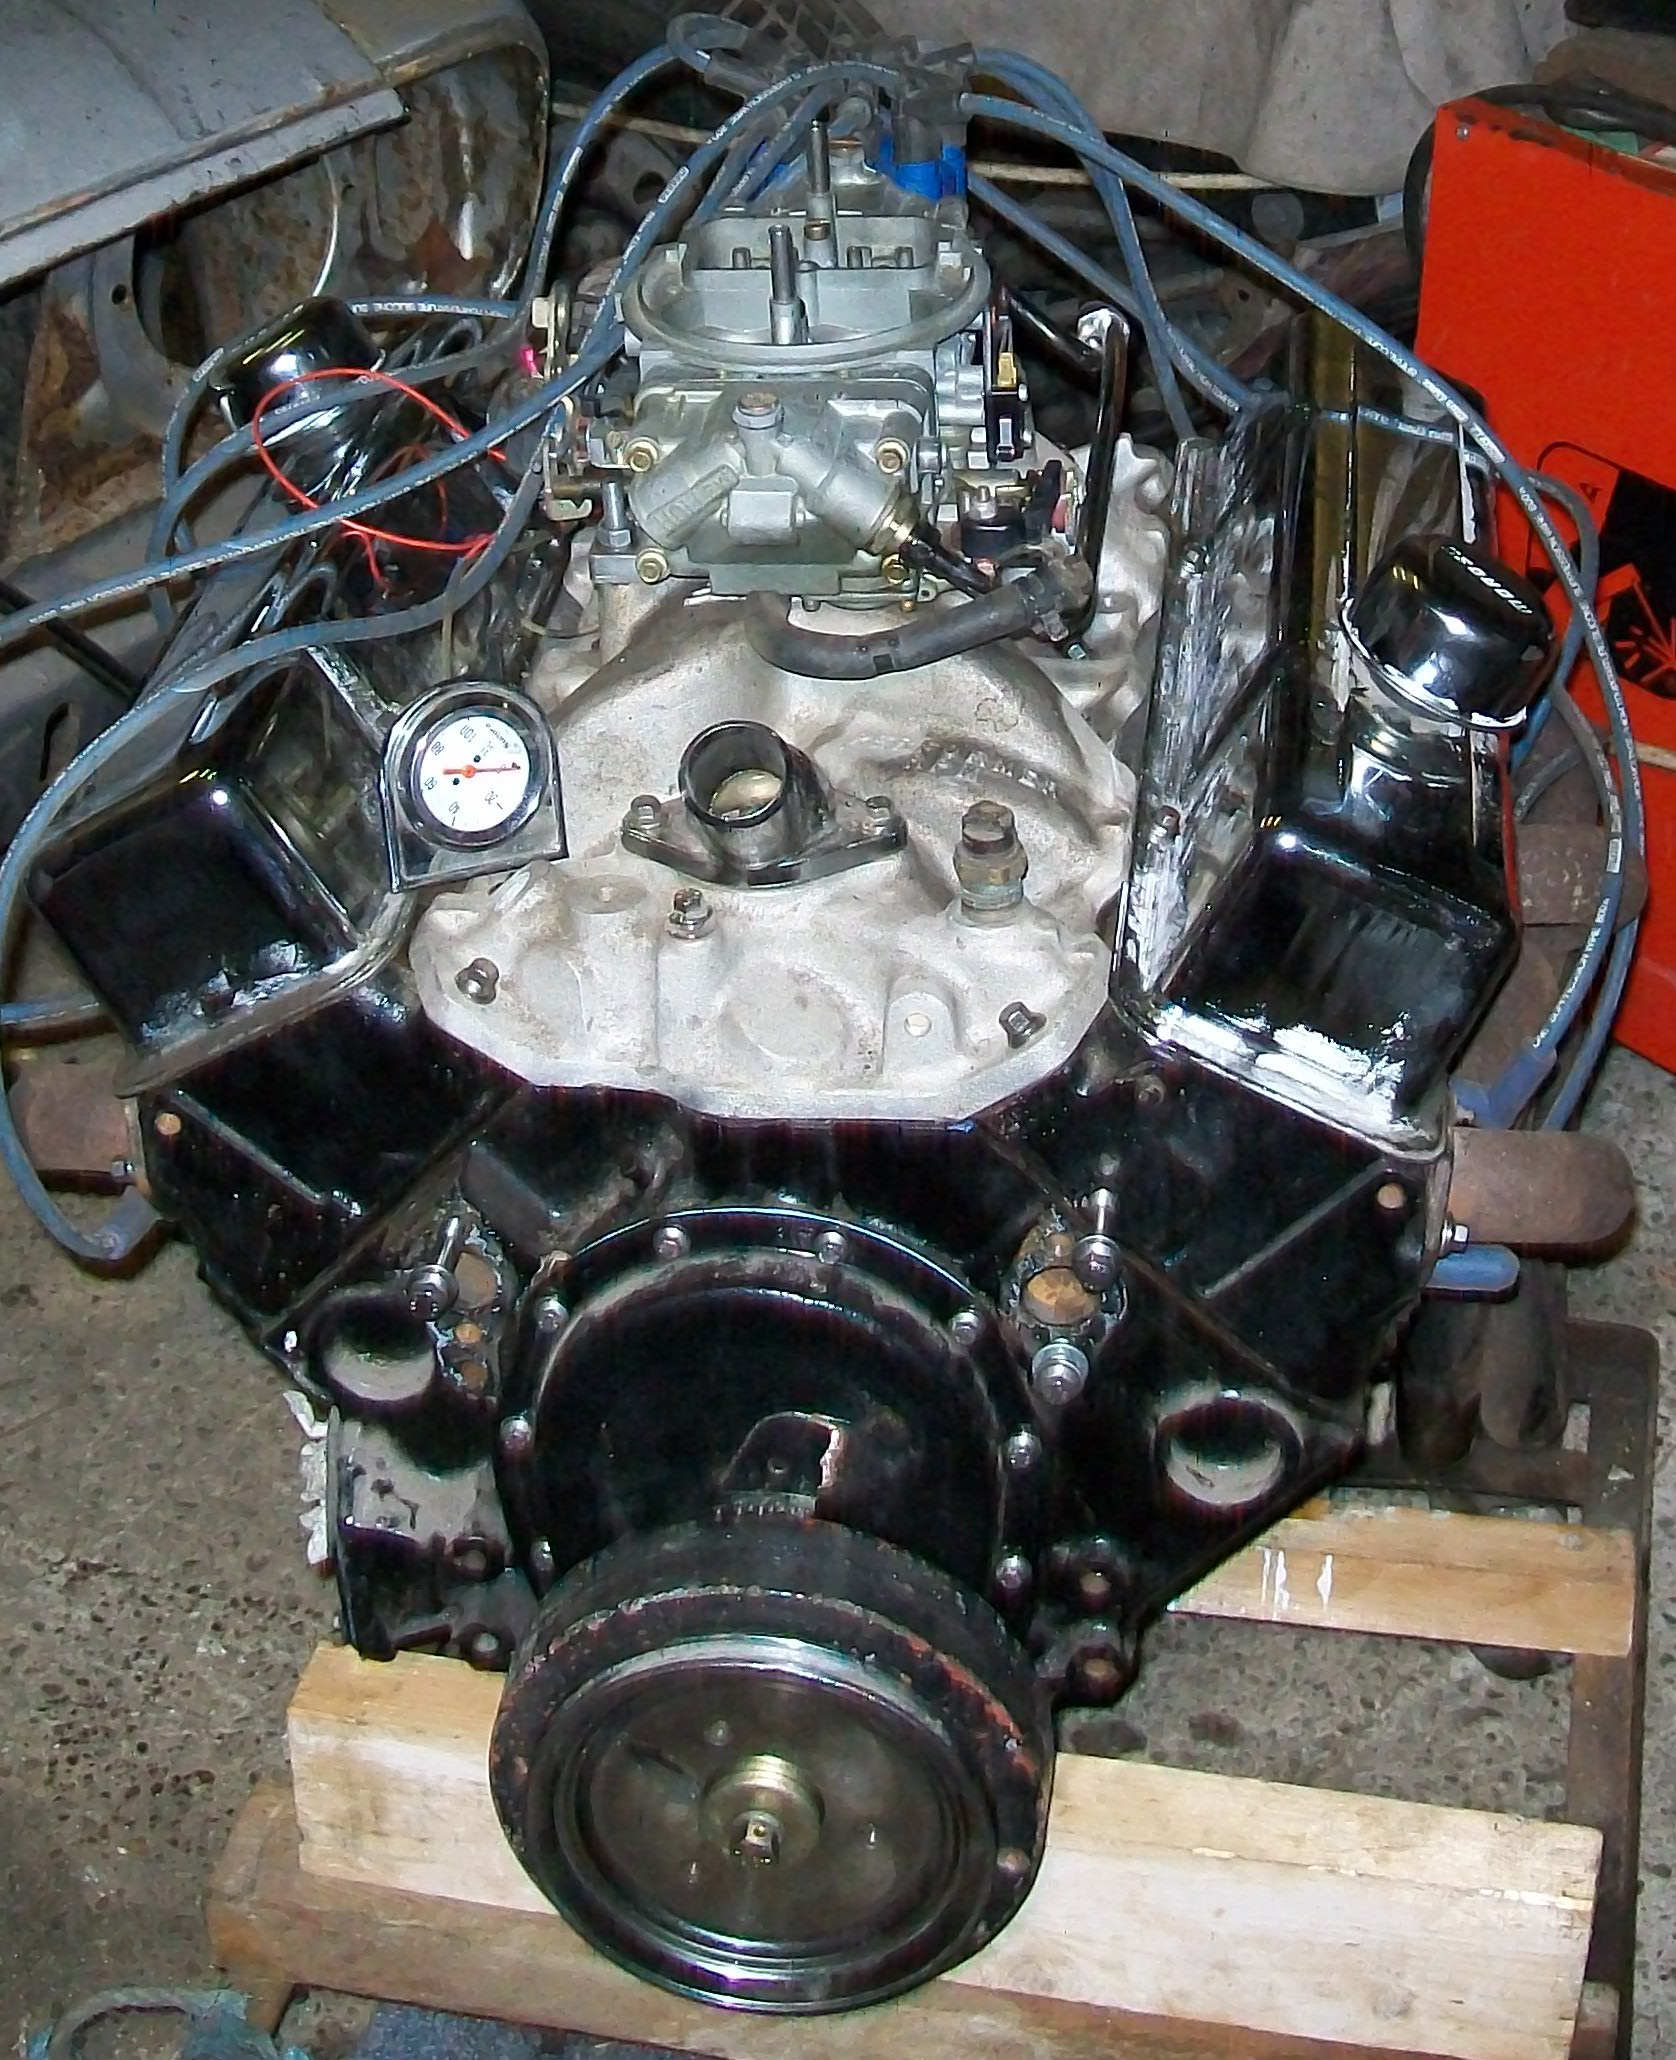 350 Chevy Engine In Jaguar: Chevrolet SBC Gen1 350ci V8 Engine